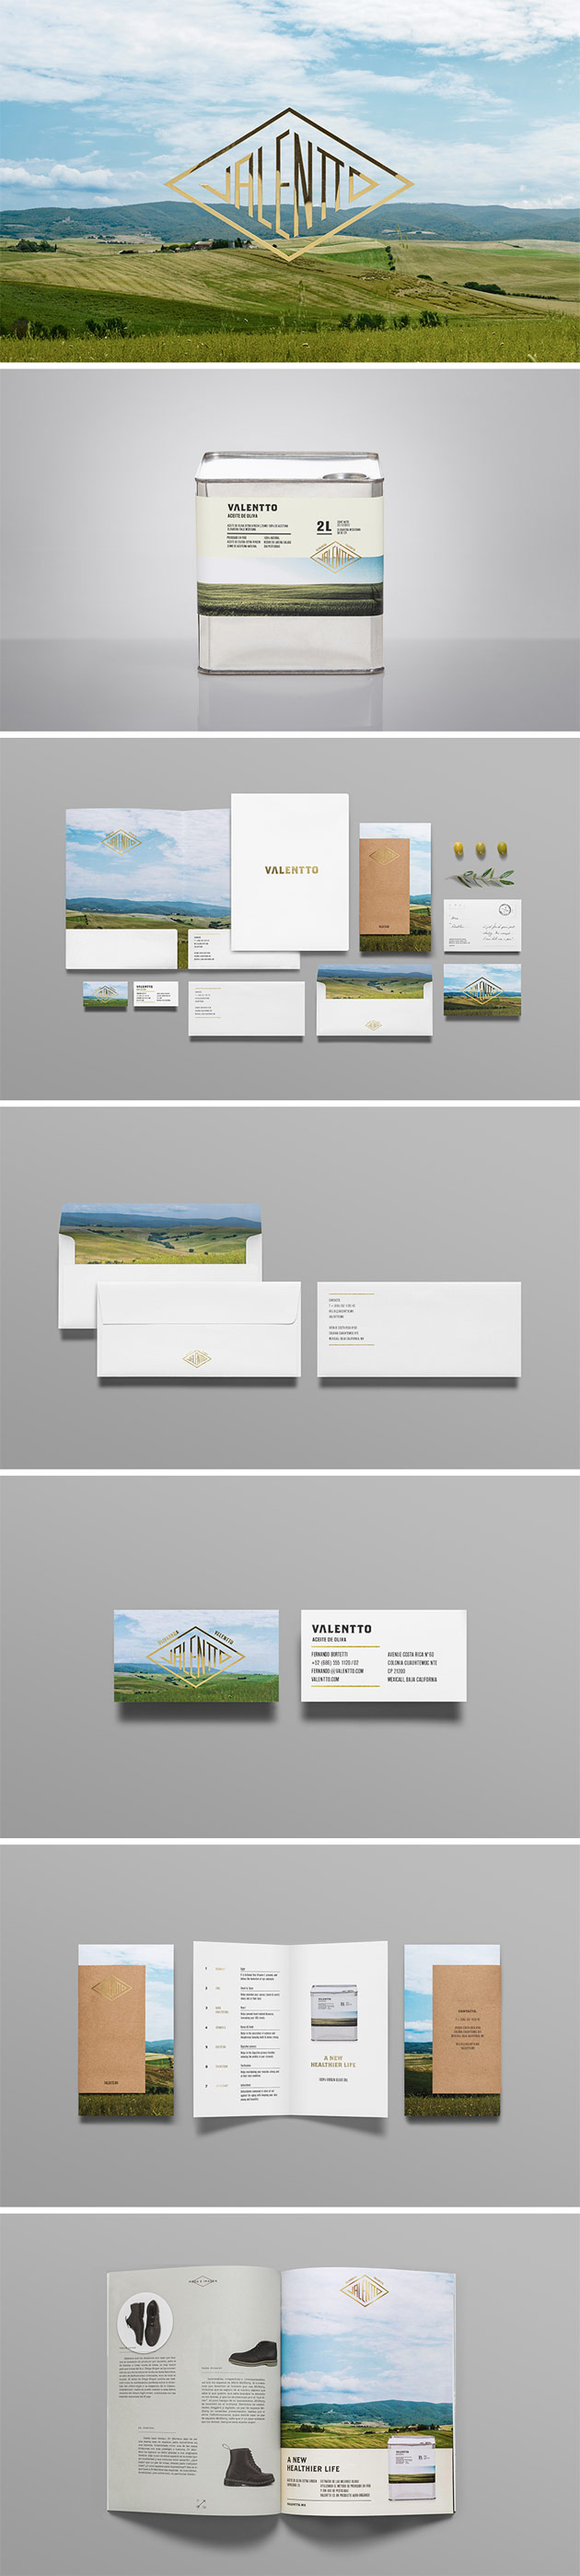 Valentto Product branding by Anagrama